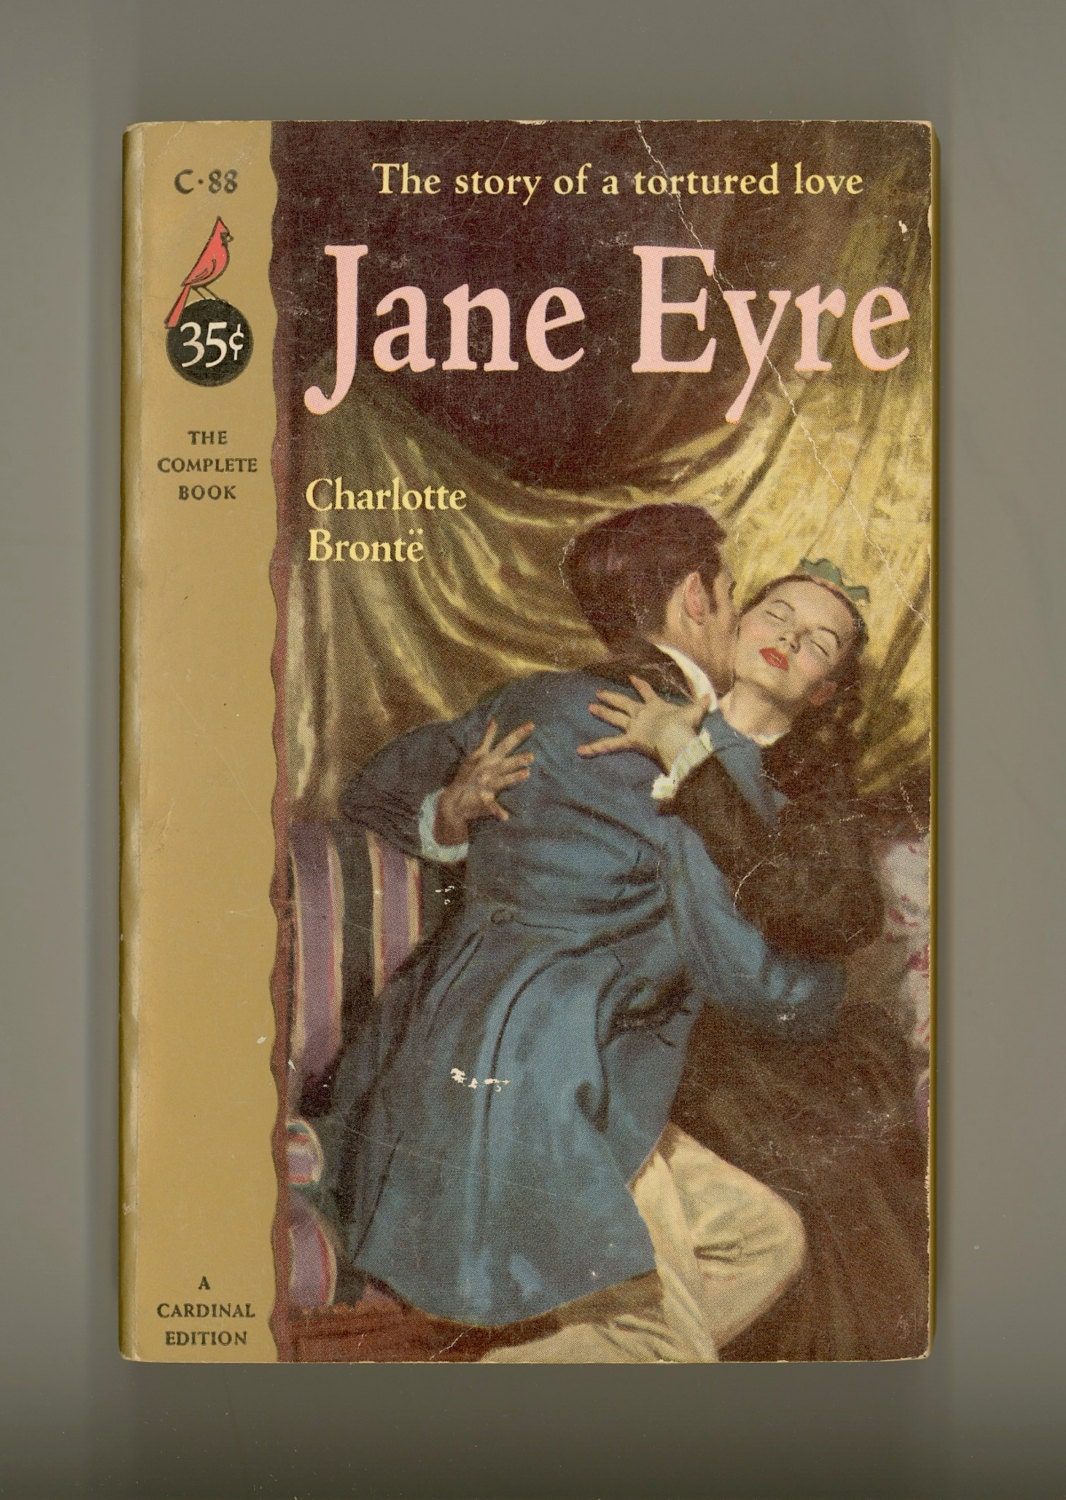 an analysis of story elements and settings in jane eyre by charlotte bronte Jane eyre - charlotte bronte jane eyre is often criticized for being moved along to often by the supernatural or coincidence it is to coincidental to be believed, and ends to happily in the victorian sense, as jane ends up married to the man she loves it is both a coming of age and a romance story all of the bronte sisters were writers.